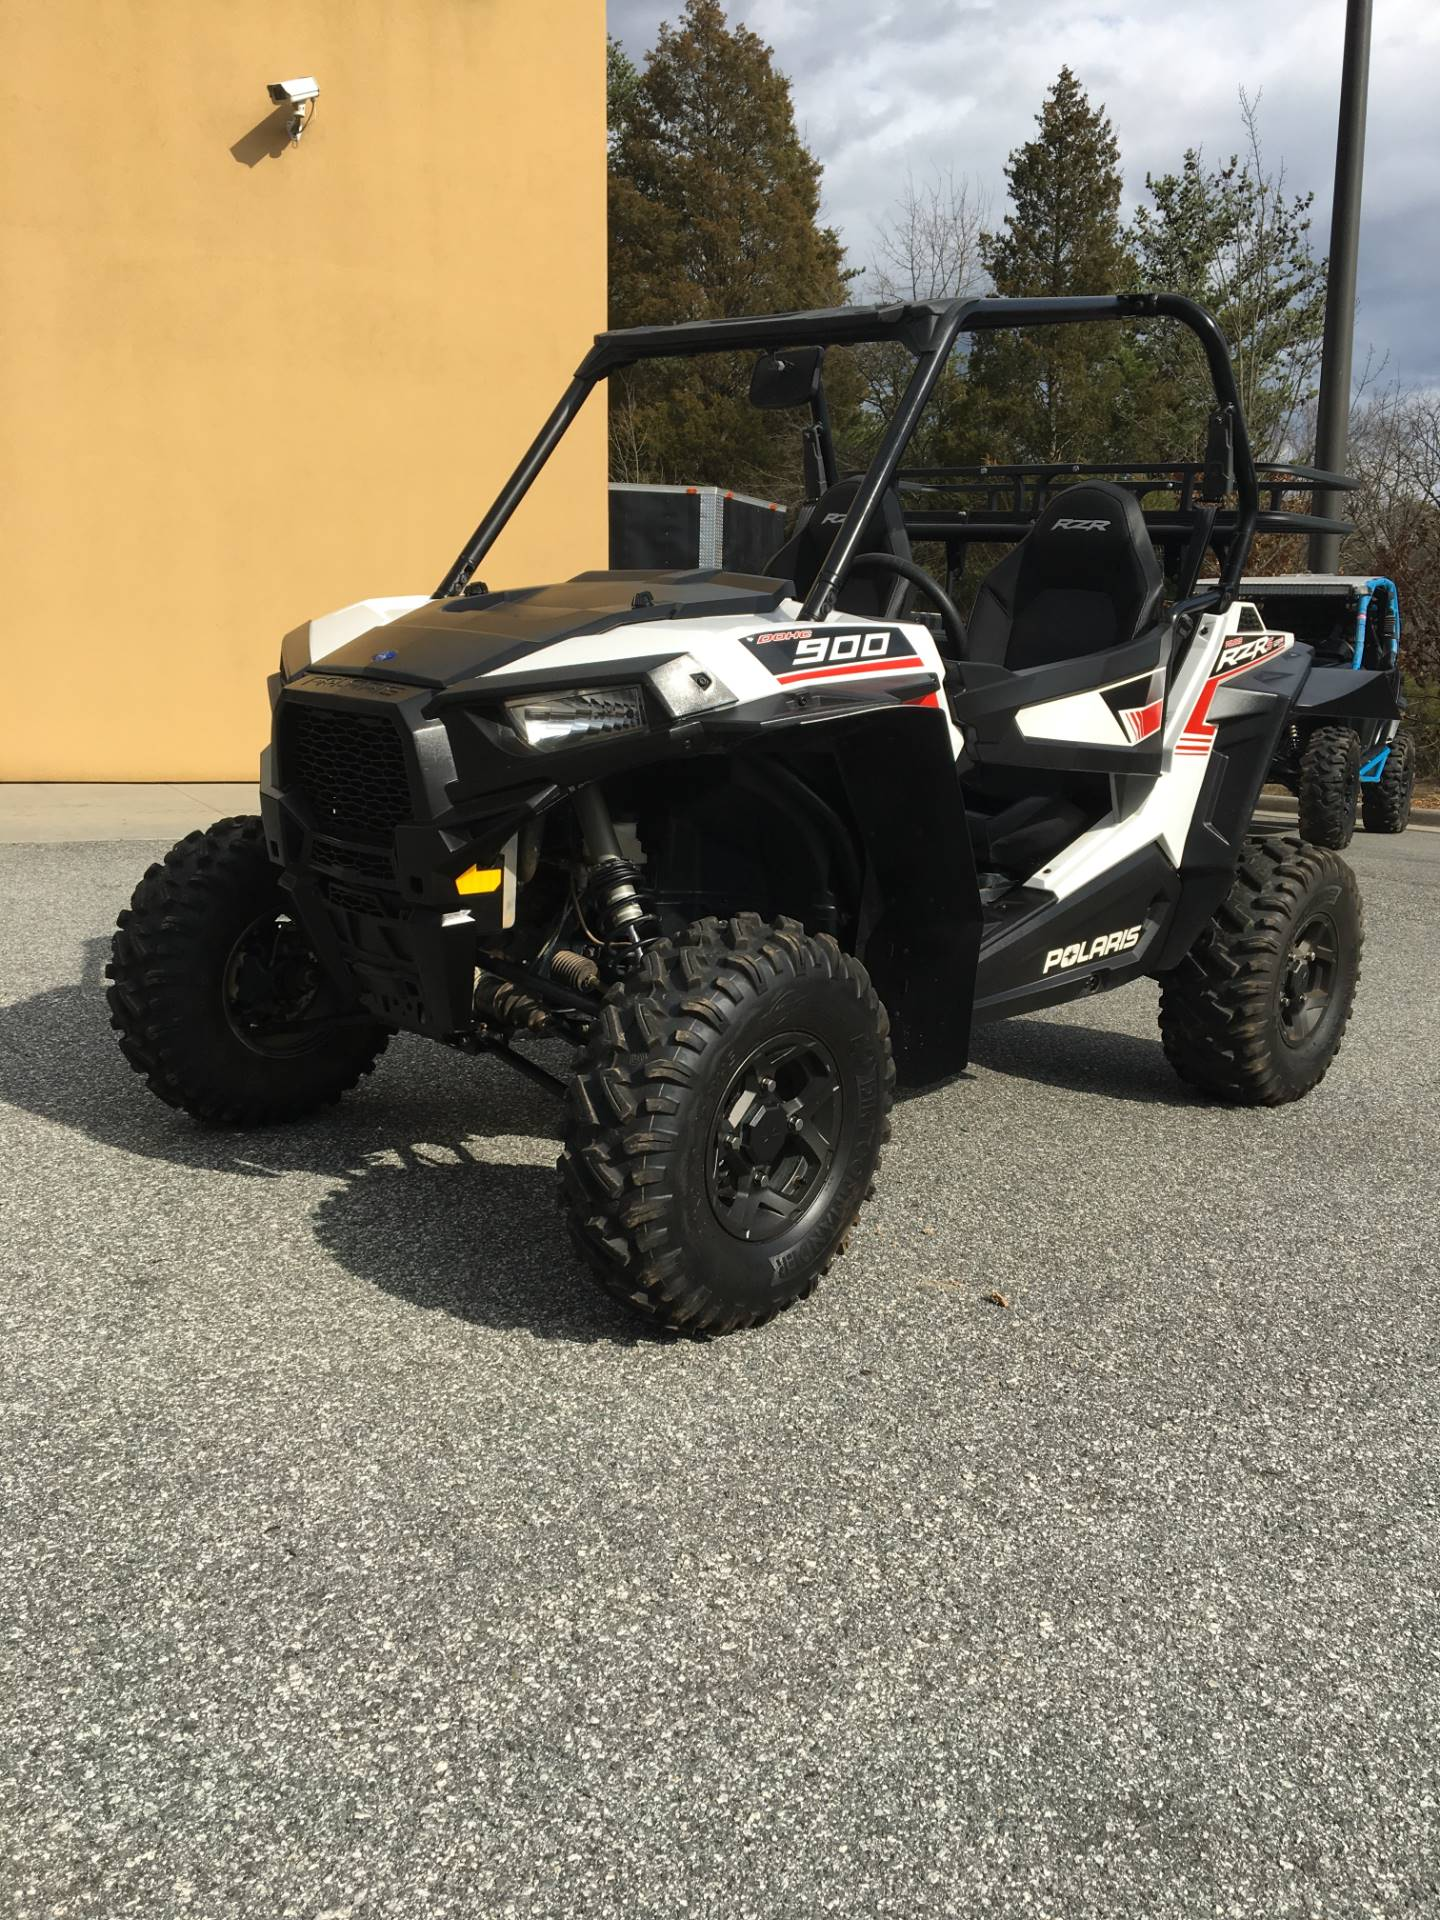 2016 Polaris Rzr S 900 In High Point North Carolina